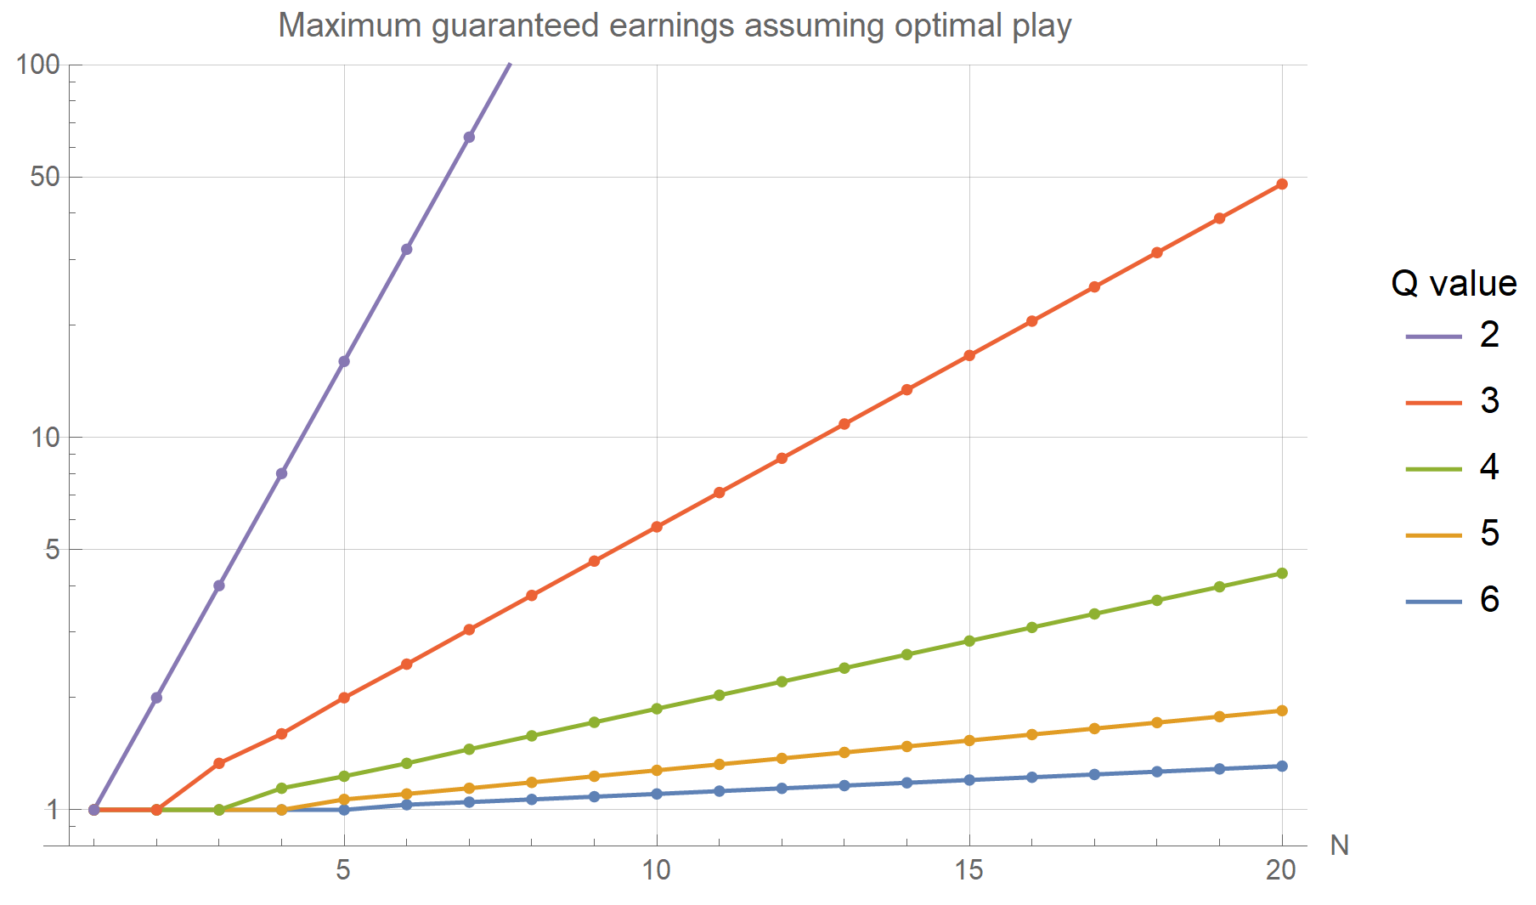 Graph showing the guaranteed winnings as a function of N and Q. For each value of Q, this value increases approximately linearly with N. The slope is much greater for smaller Q.